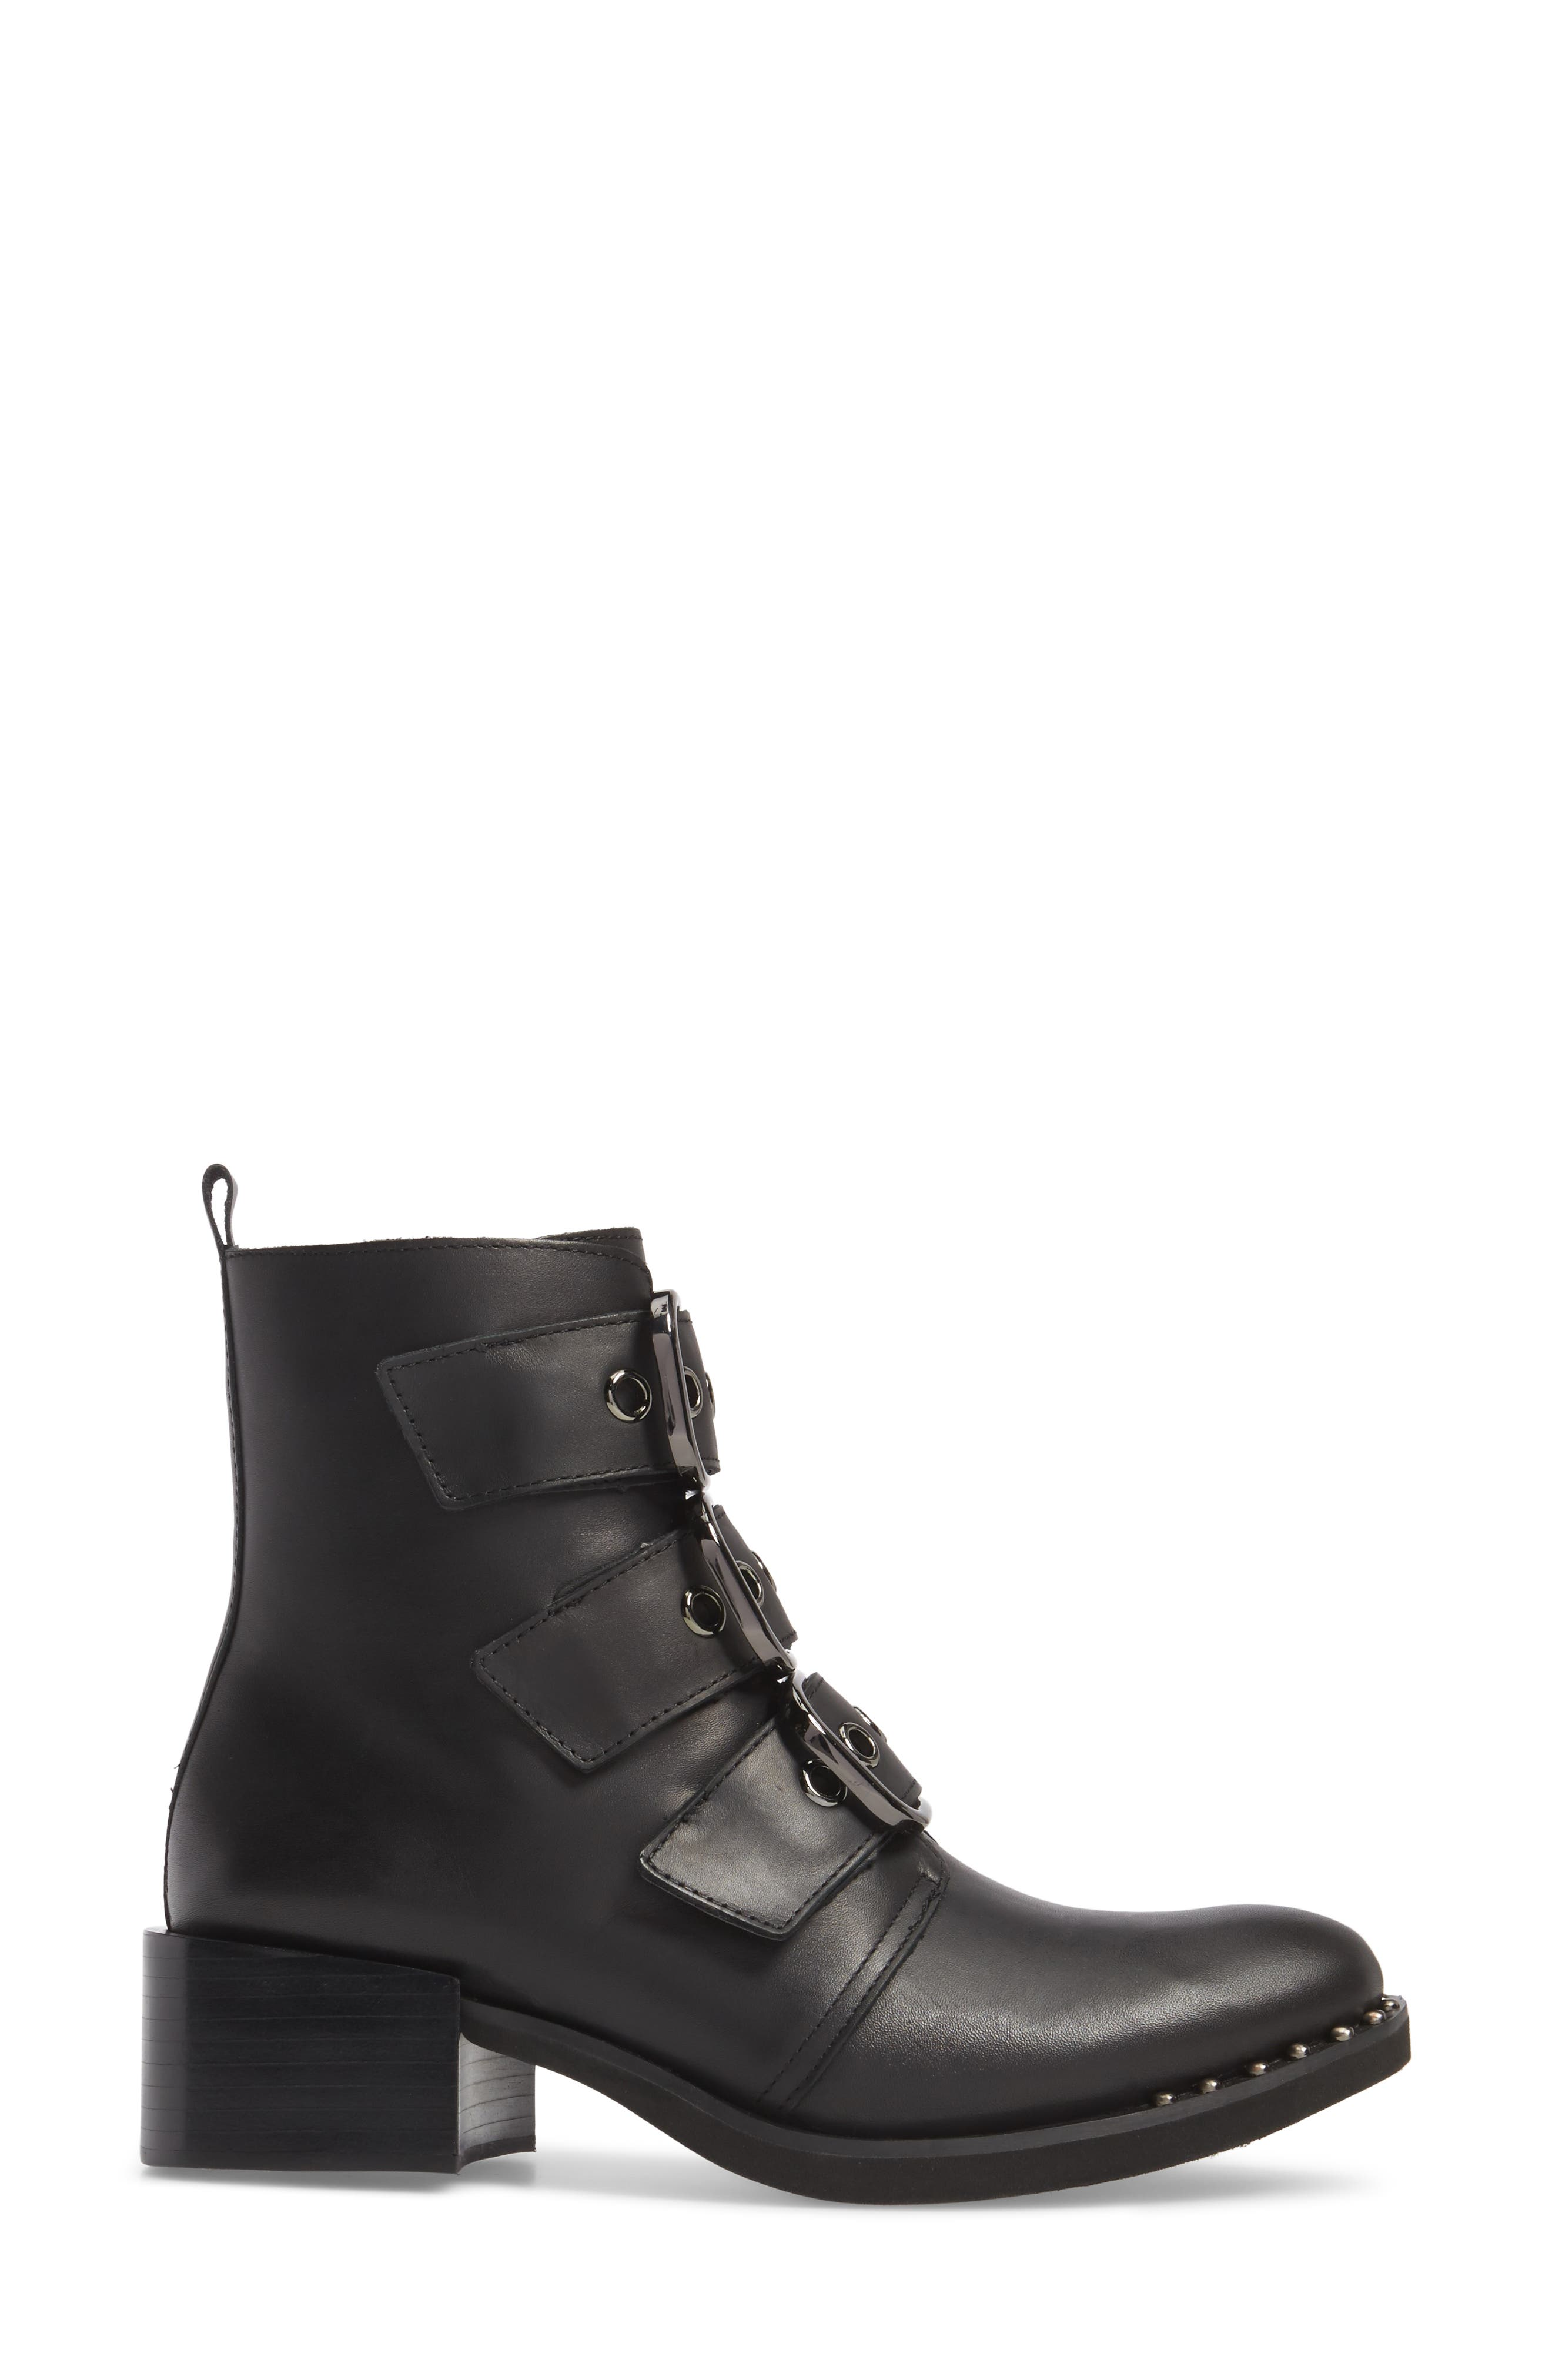 Todd Buckle Strap Bootie,                             Alternate thumbnail 3, color,                             001